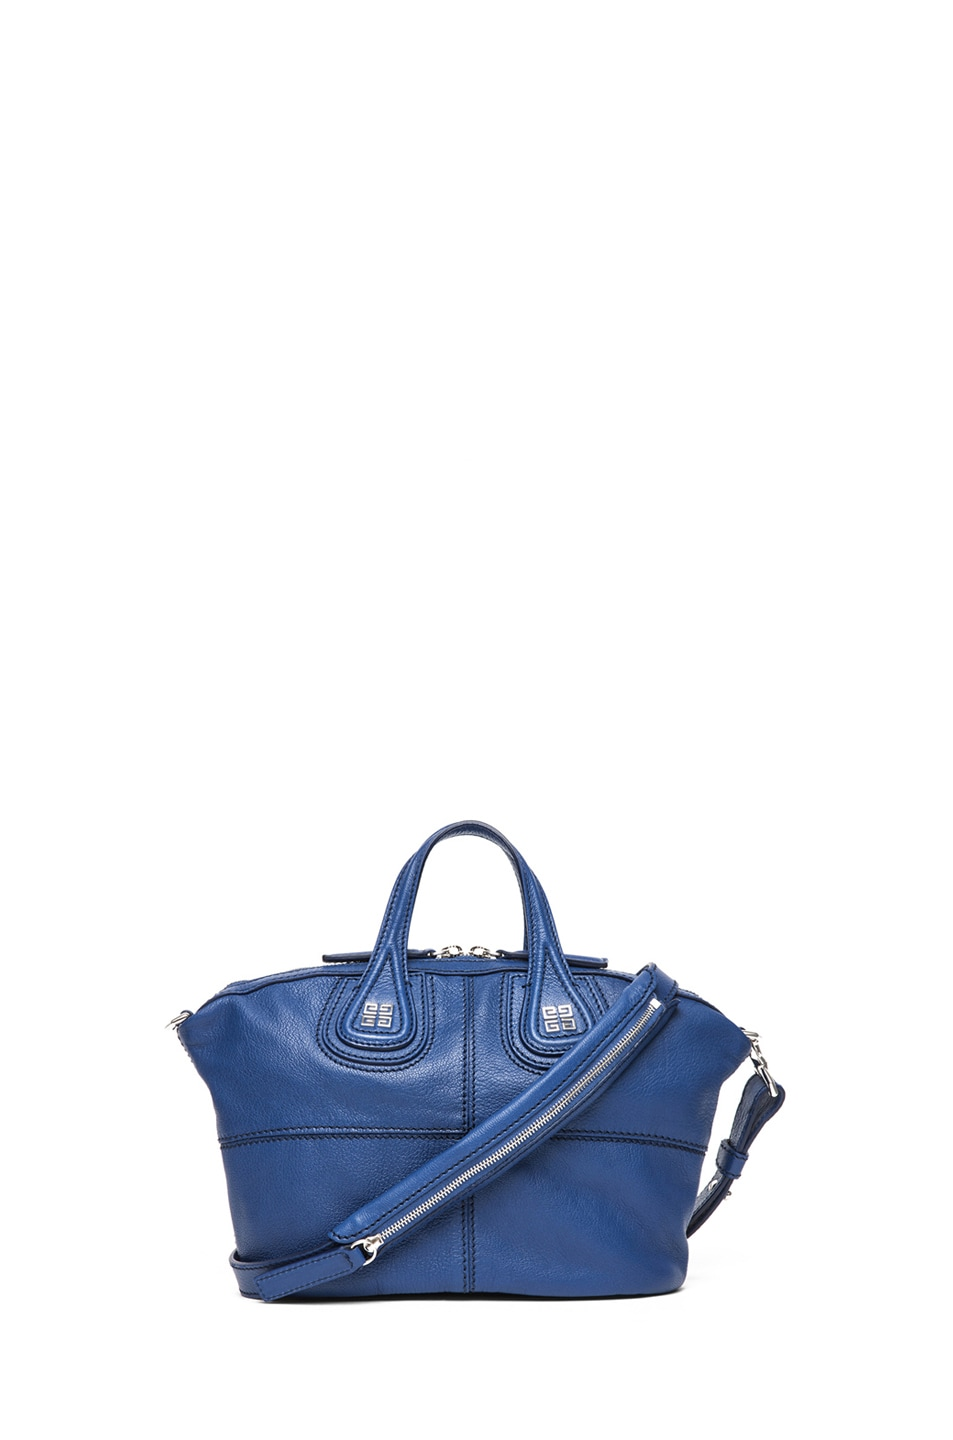 Image 1 of GIVENCHY Micro Nightingale in Moroccan Blue